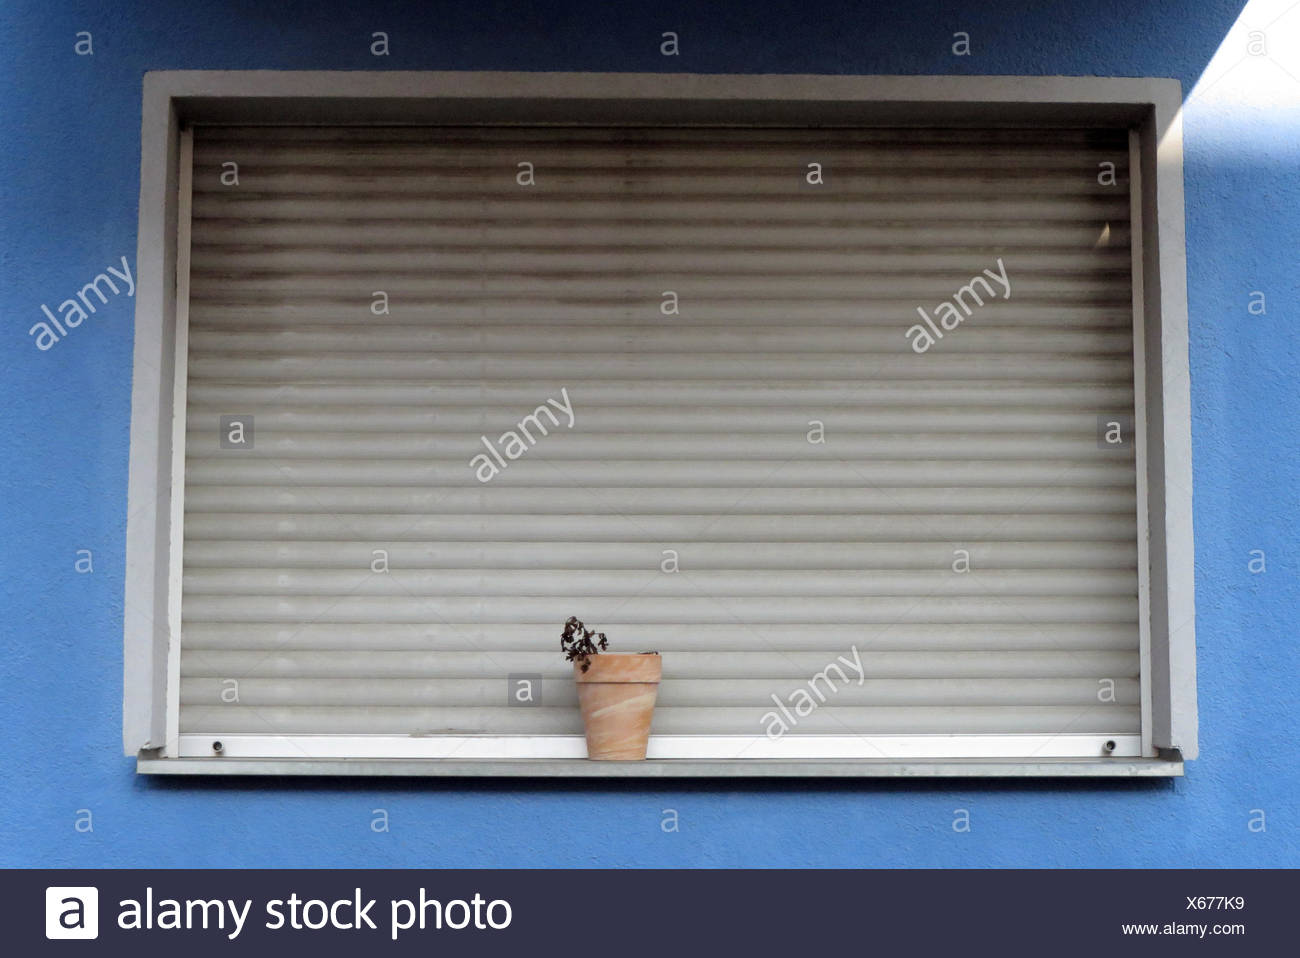 Berlin, Germany, Flower pot with withered flower in front of a lowered blind - Stock Image